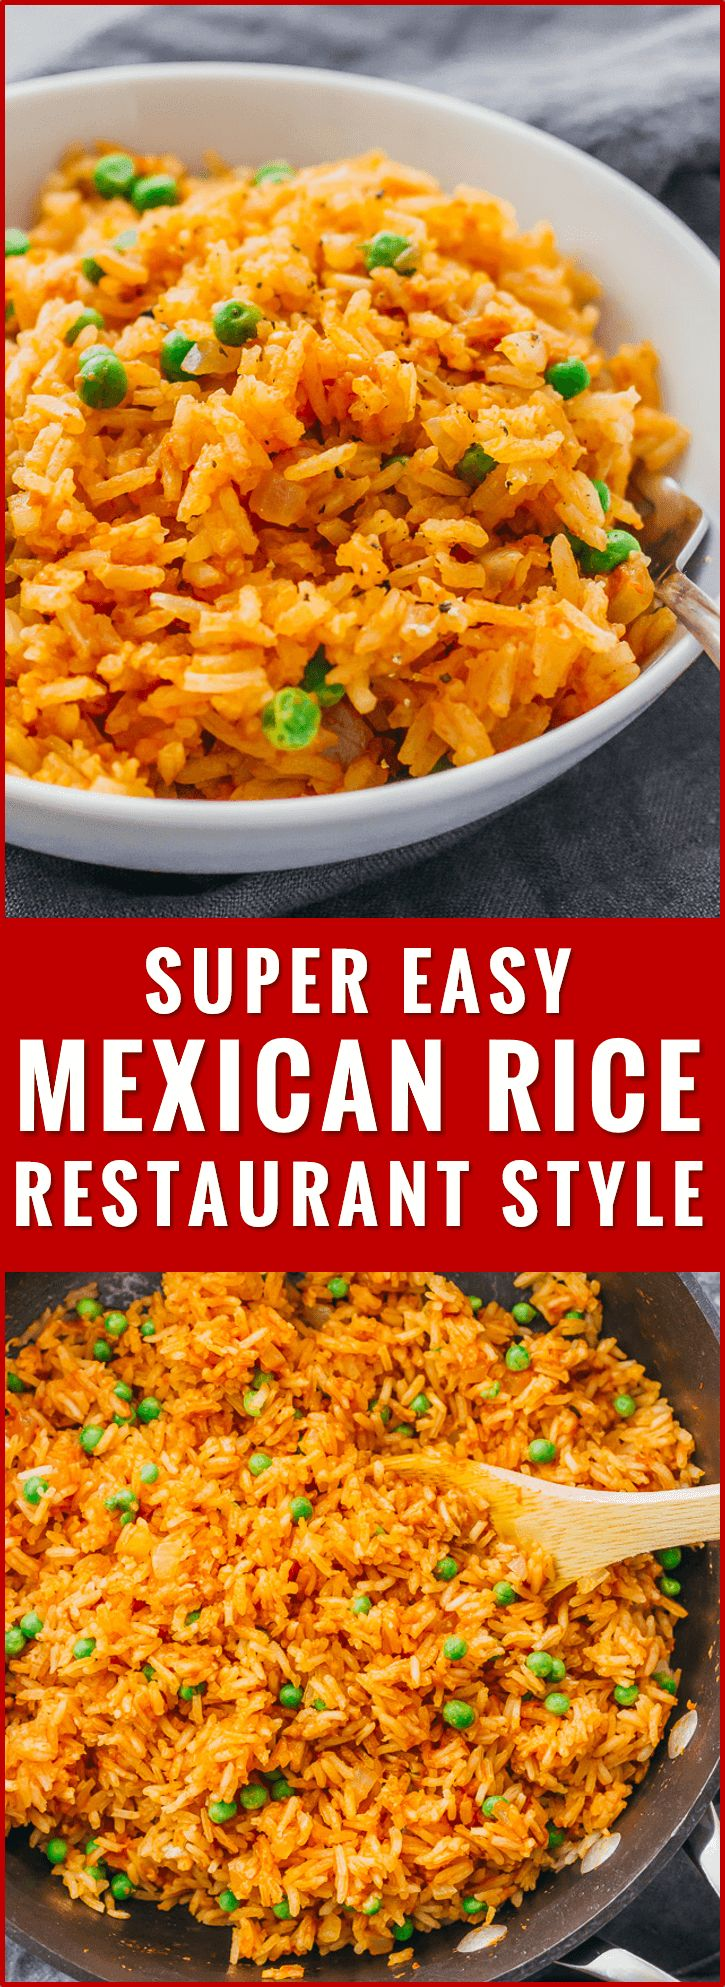 Best 25 white rice dishes ideas on pinterest cooking white rice best 25 white rice dishes ideas on pinterest cooking white rice beans recipes and recipes with white rice ccuart Choice Image